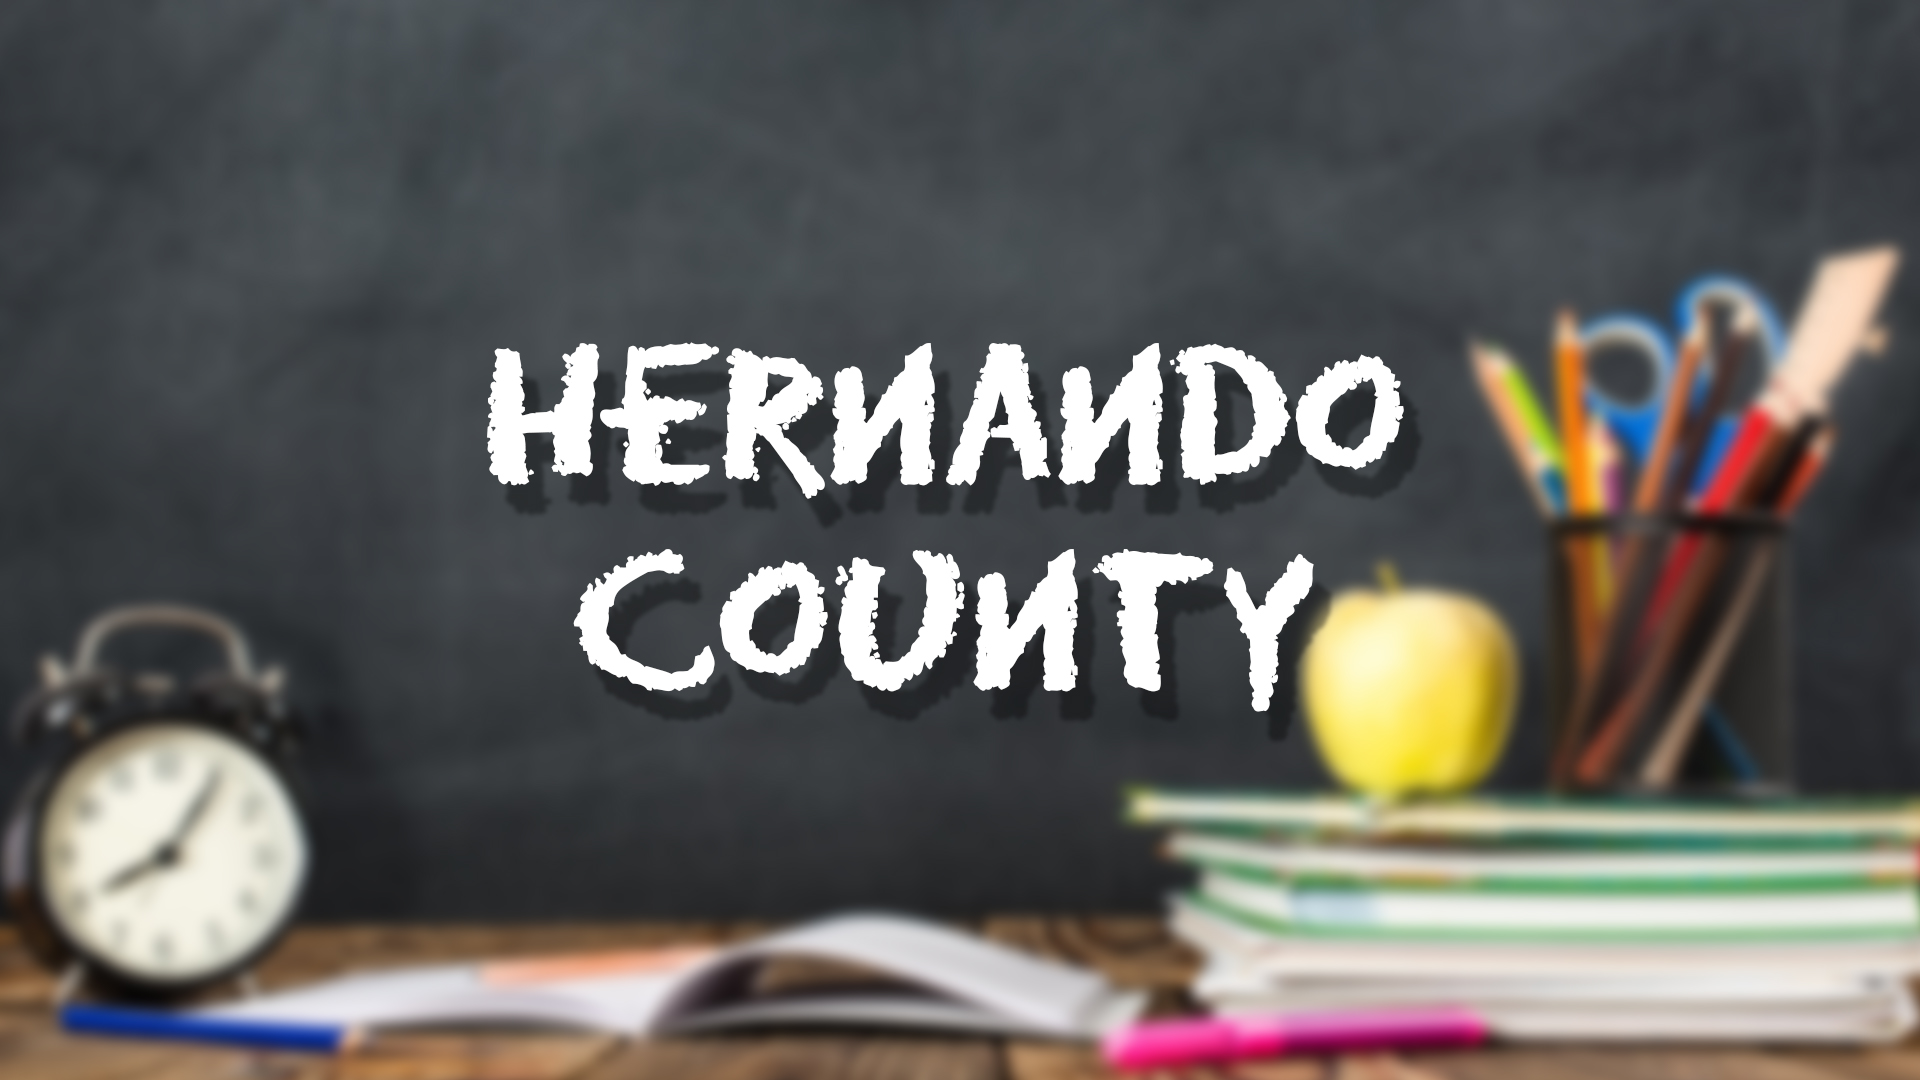 Hernando County Events 2020.2019 2020 Bell Schedules For Hernando County